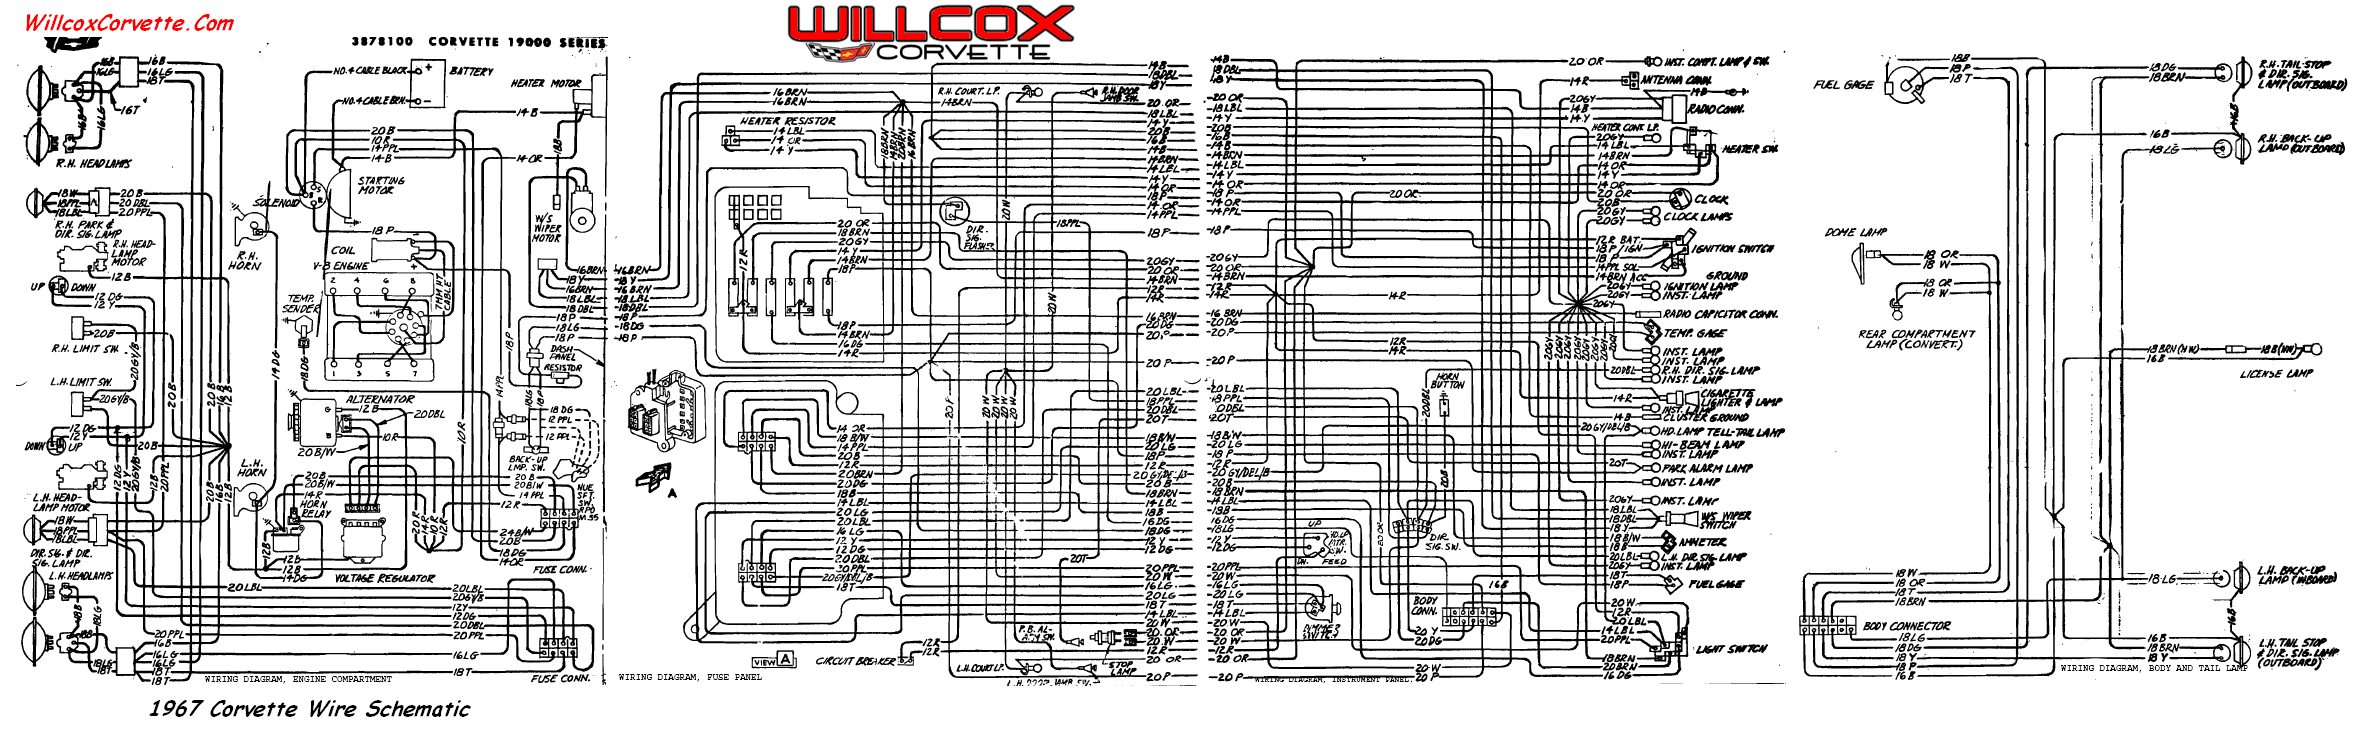 95 corvette wiring diagram corvette wiring diagram corvette wiring diagrams online 1967 corvette wiring diagram tracer schematic willcox corvette